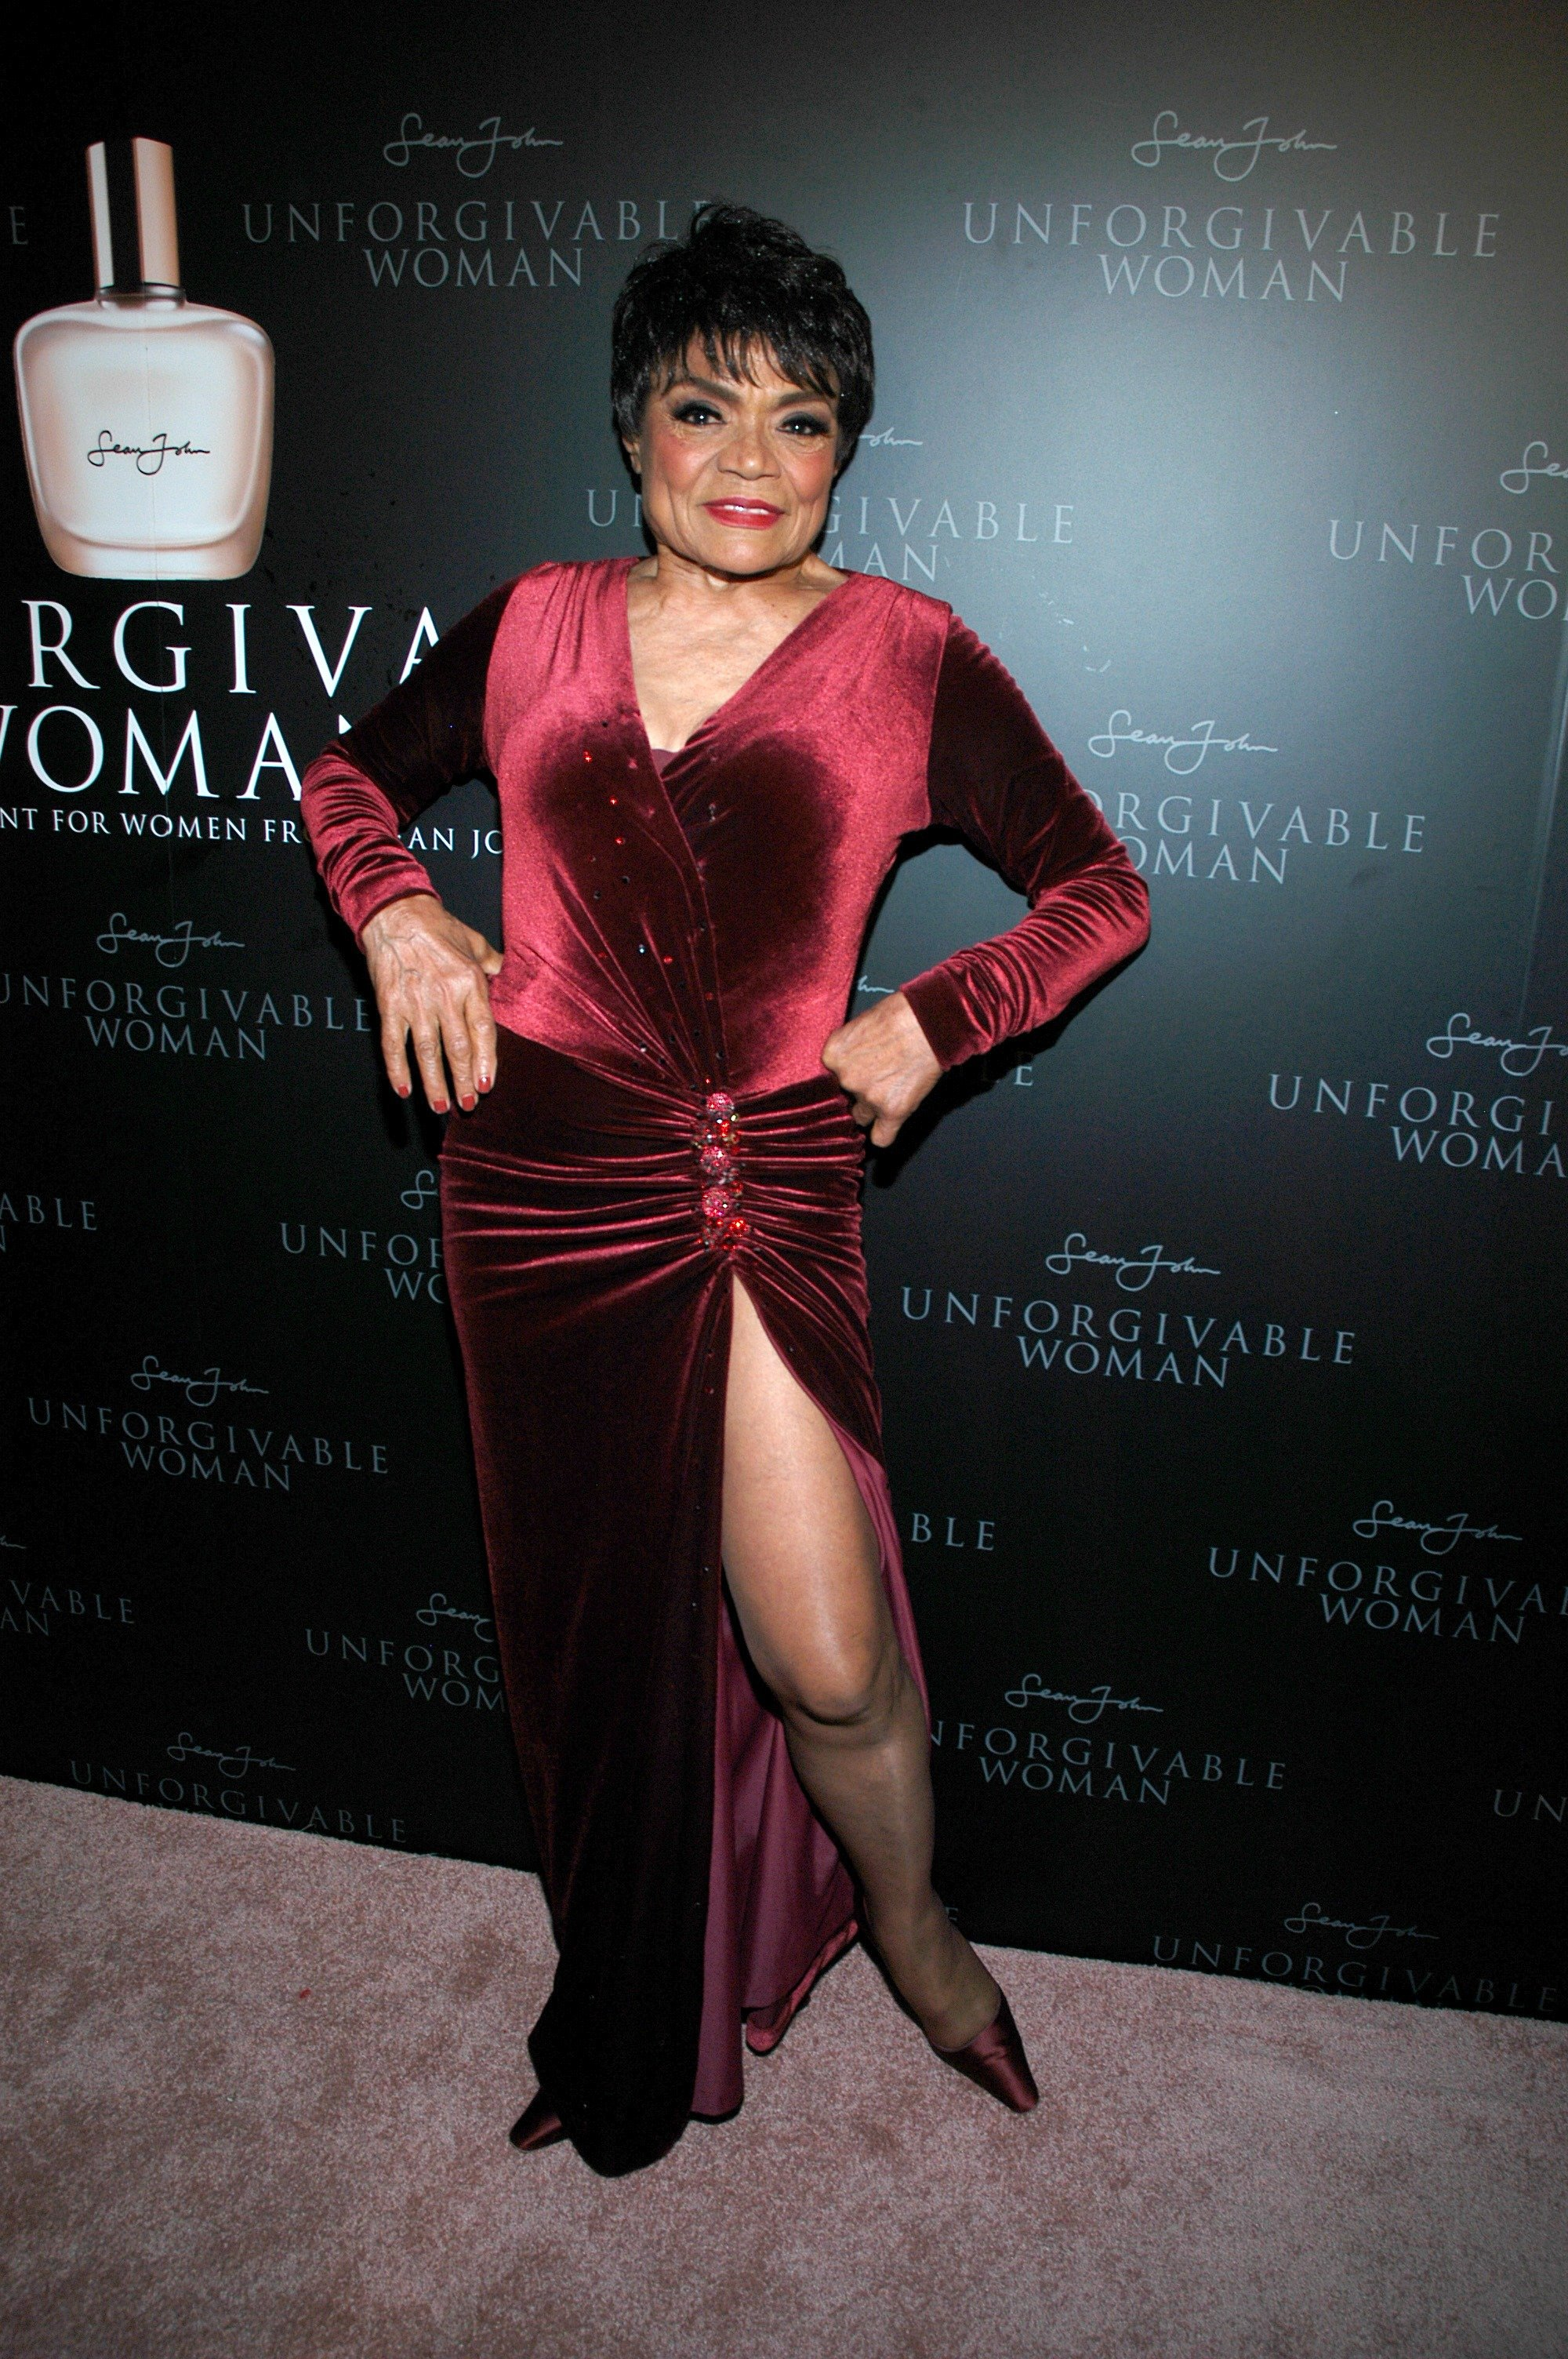 """Eartha Kitt at the launch of Sean """"Diddy"""" Combs' new scent """"Unforgivable Woman"""" on September 19, 2007 in New York City   Photo: Getty Images"""